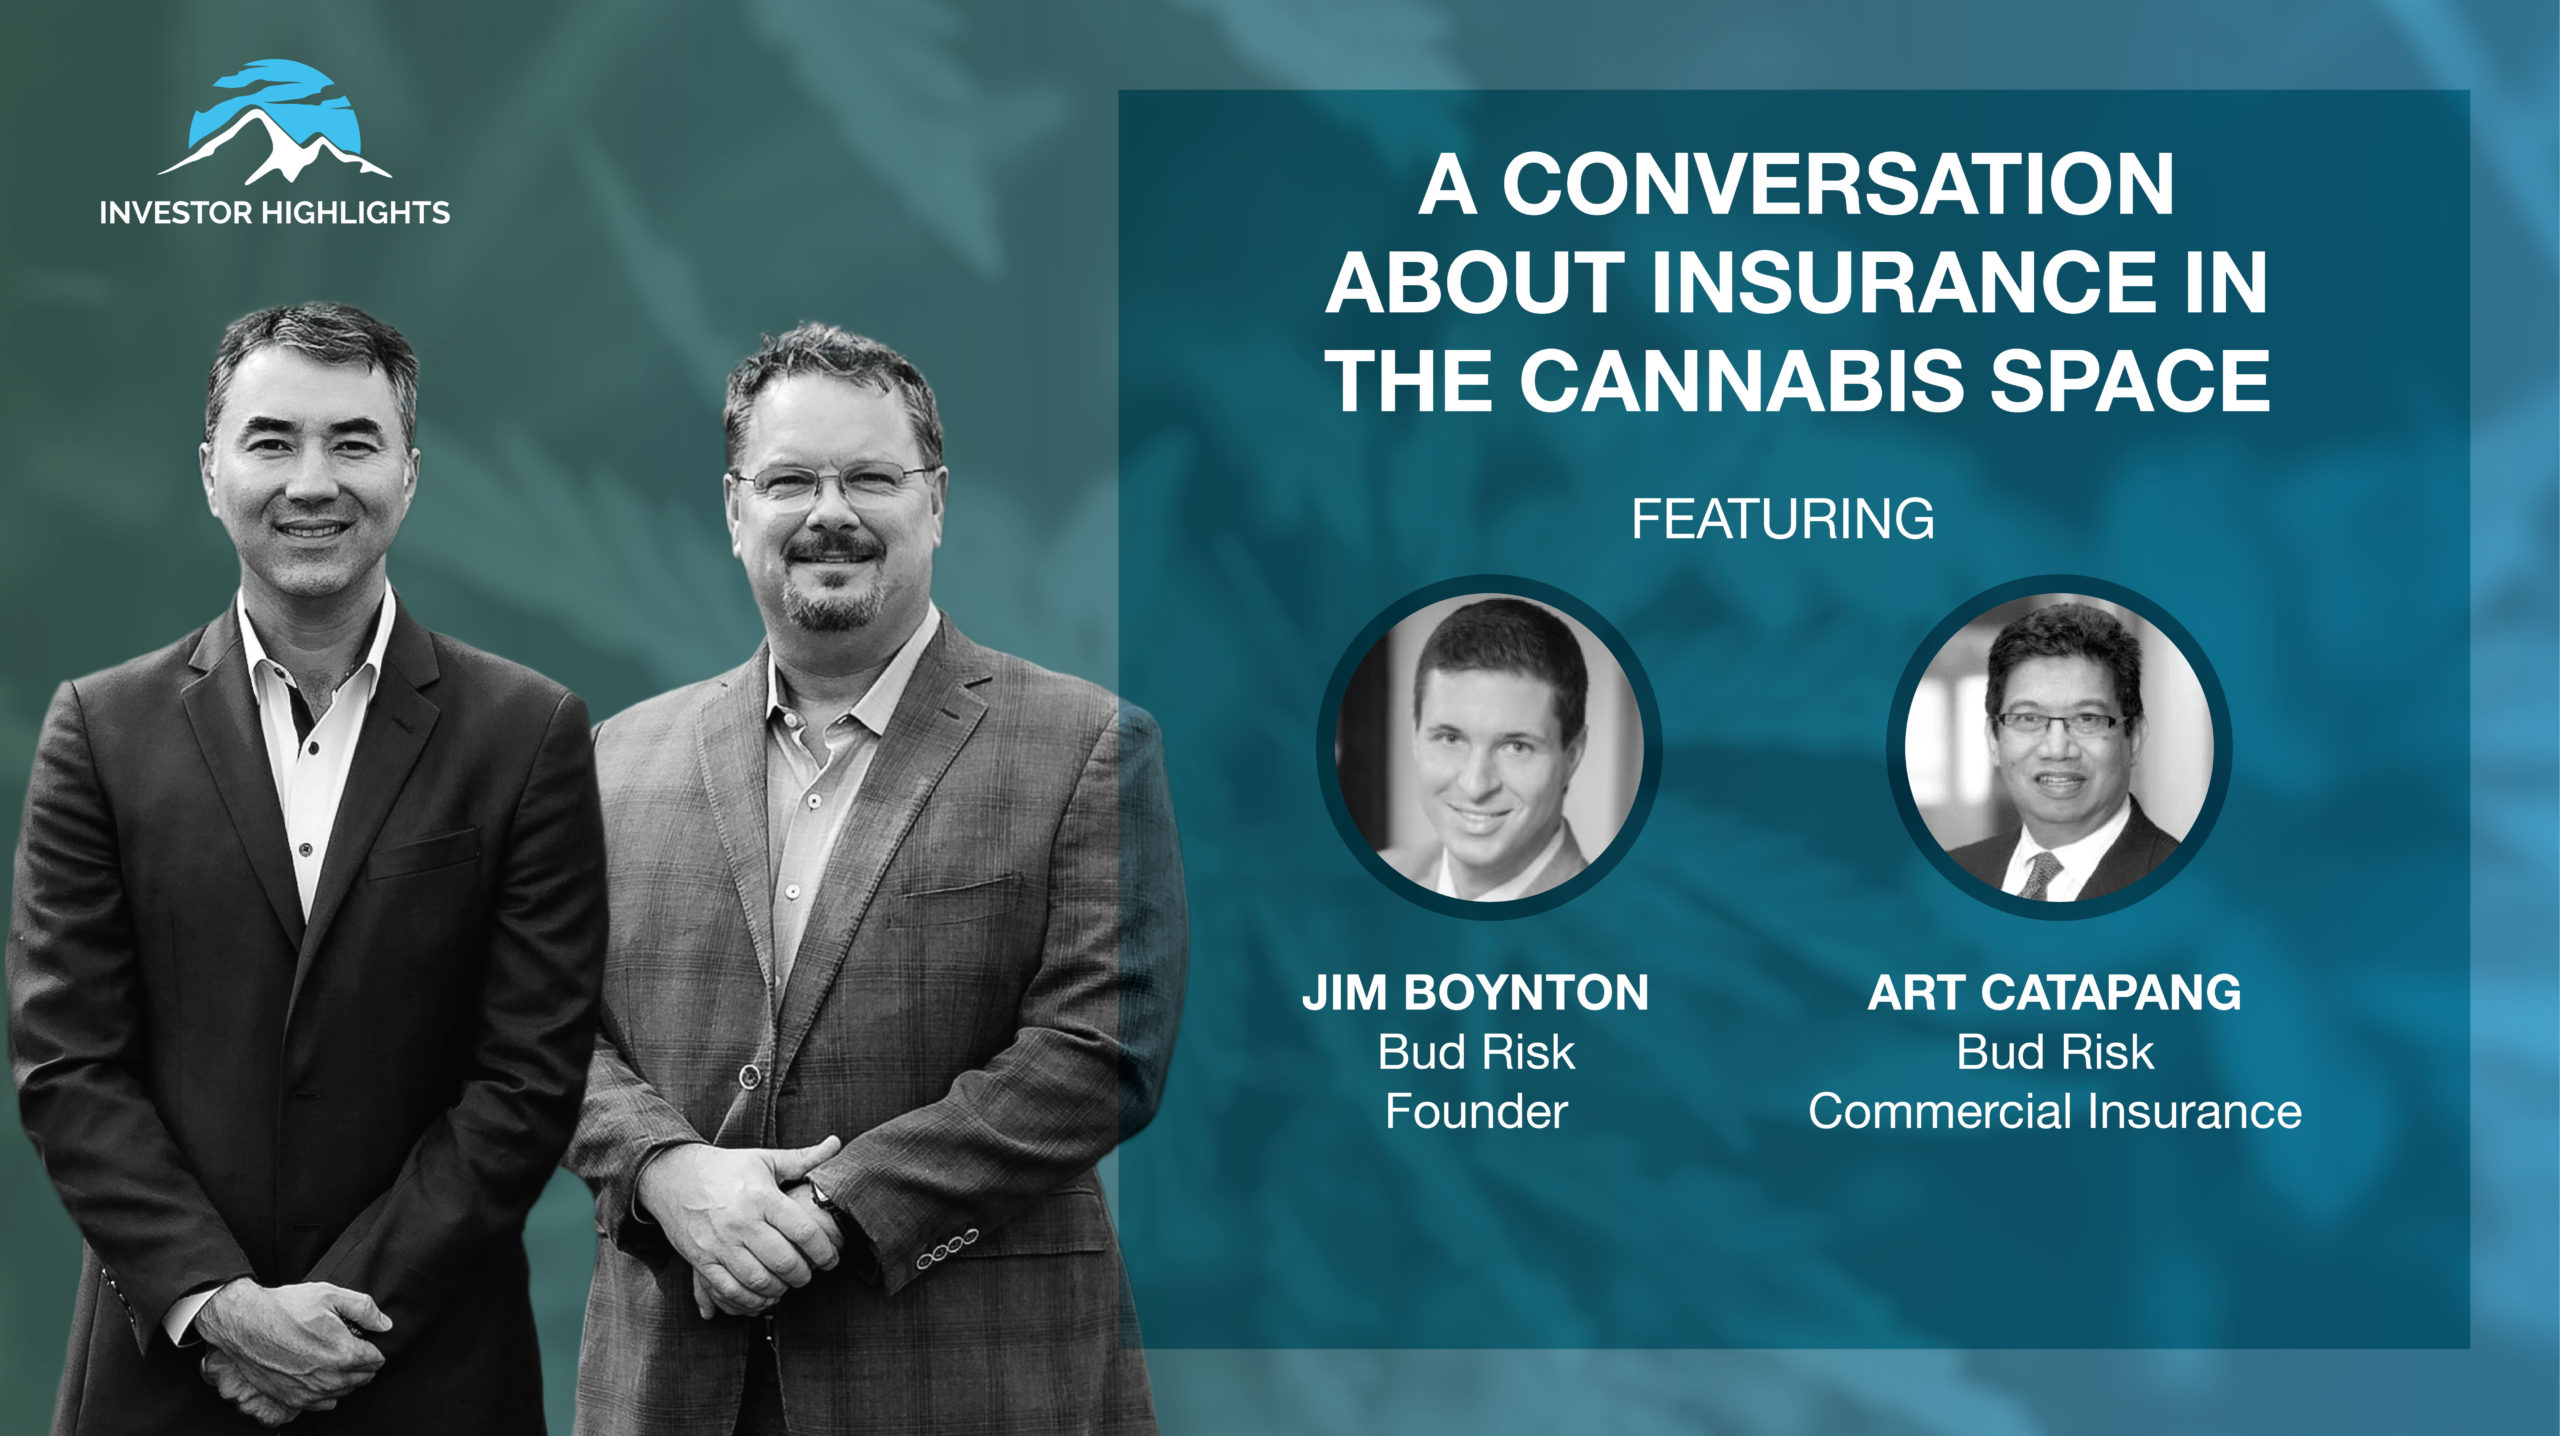 A conversation about Insurance in the Cannabis space with Jim Boynton and Art Catapang from Bud Risk